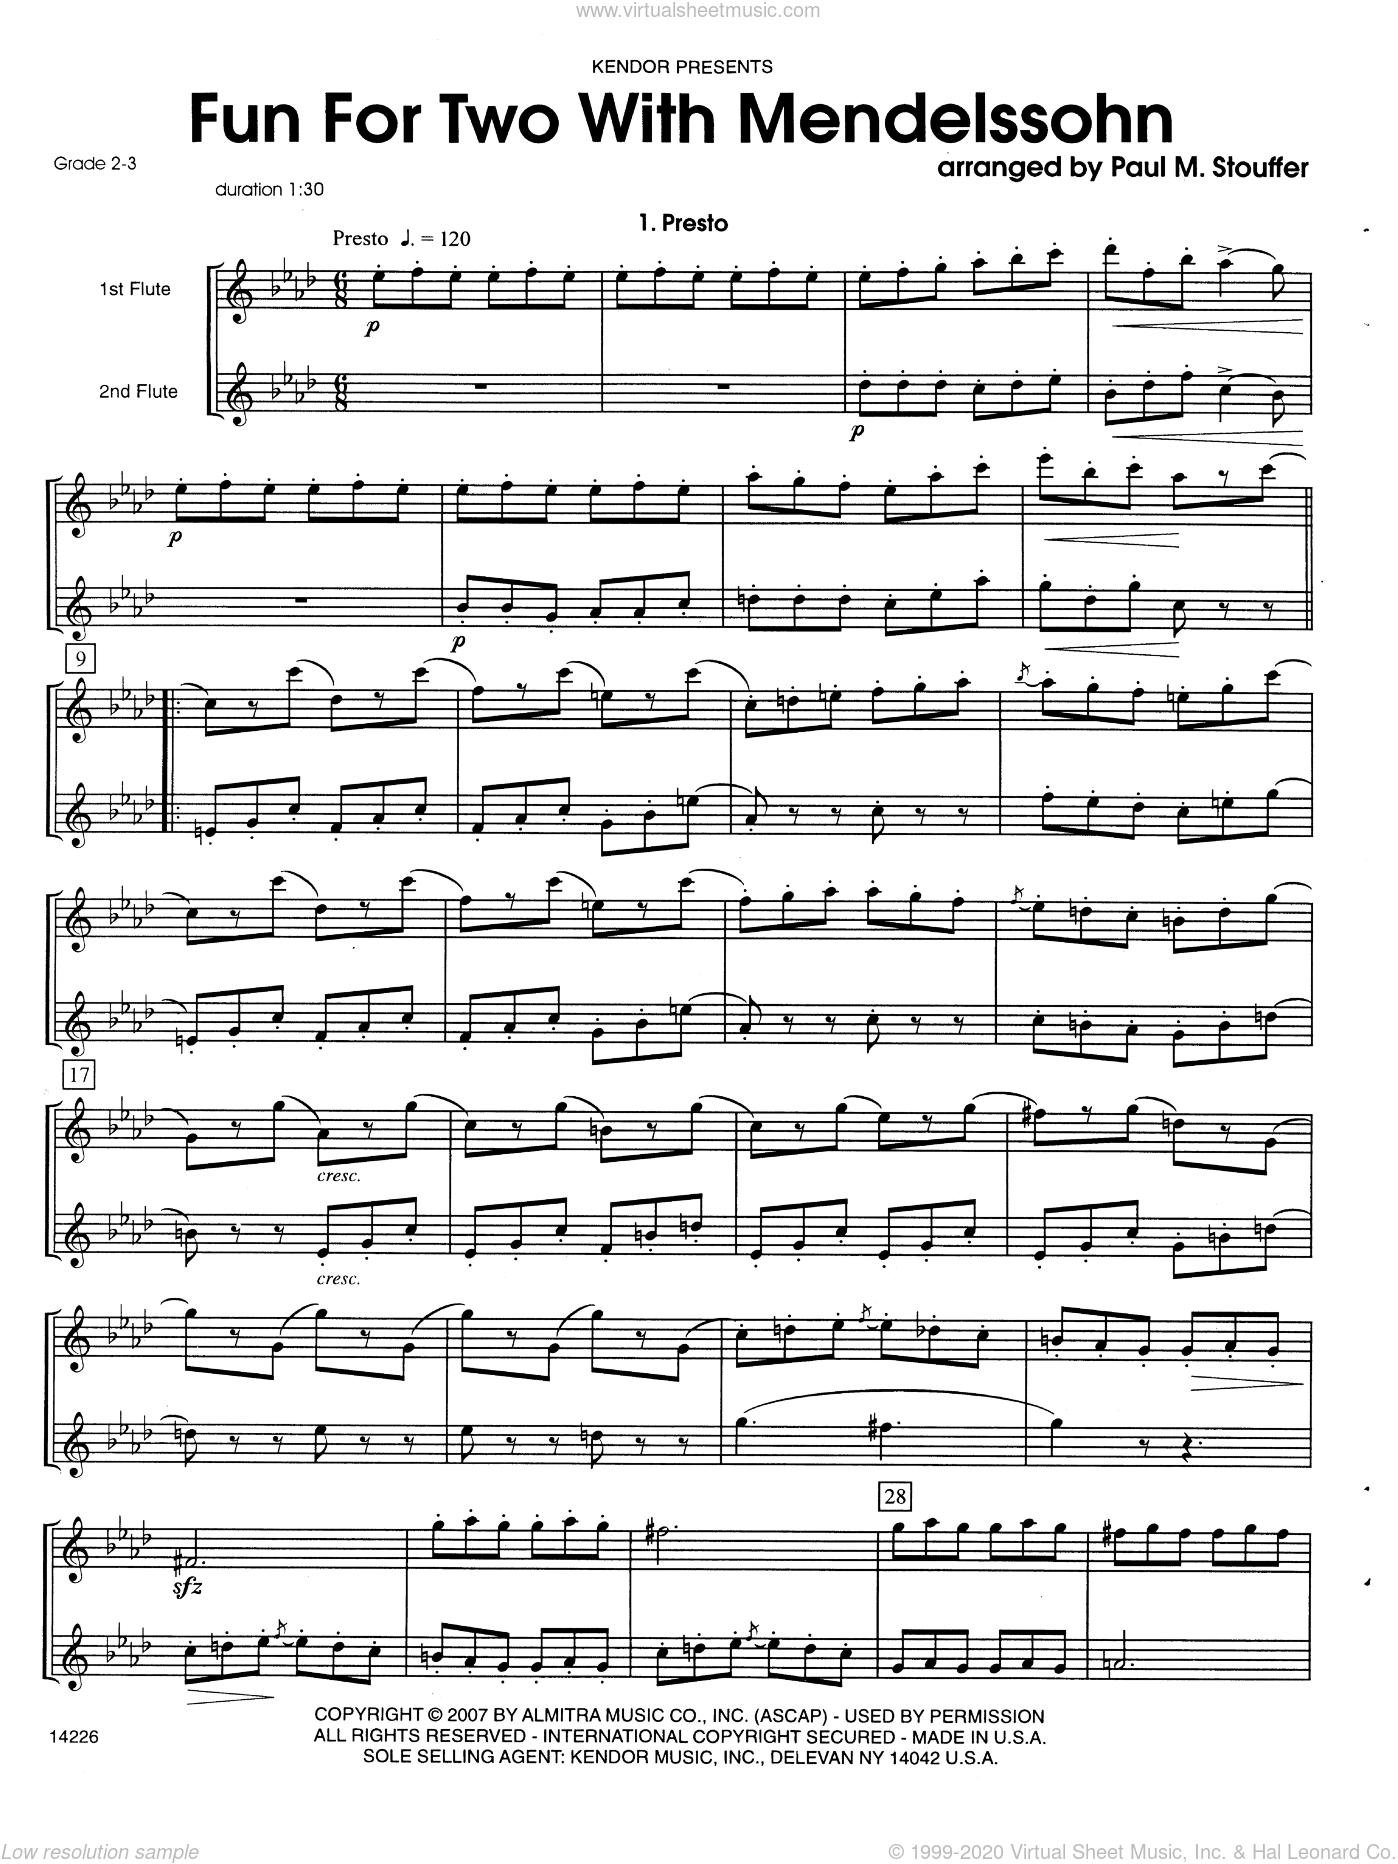 Fun For Two With Mendelssohn sheet music for two flutes by Felix Mendelssohn-Bartholdy and Stouffer. Score Image Preview.